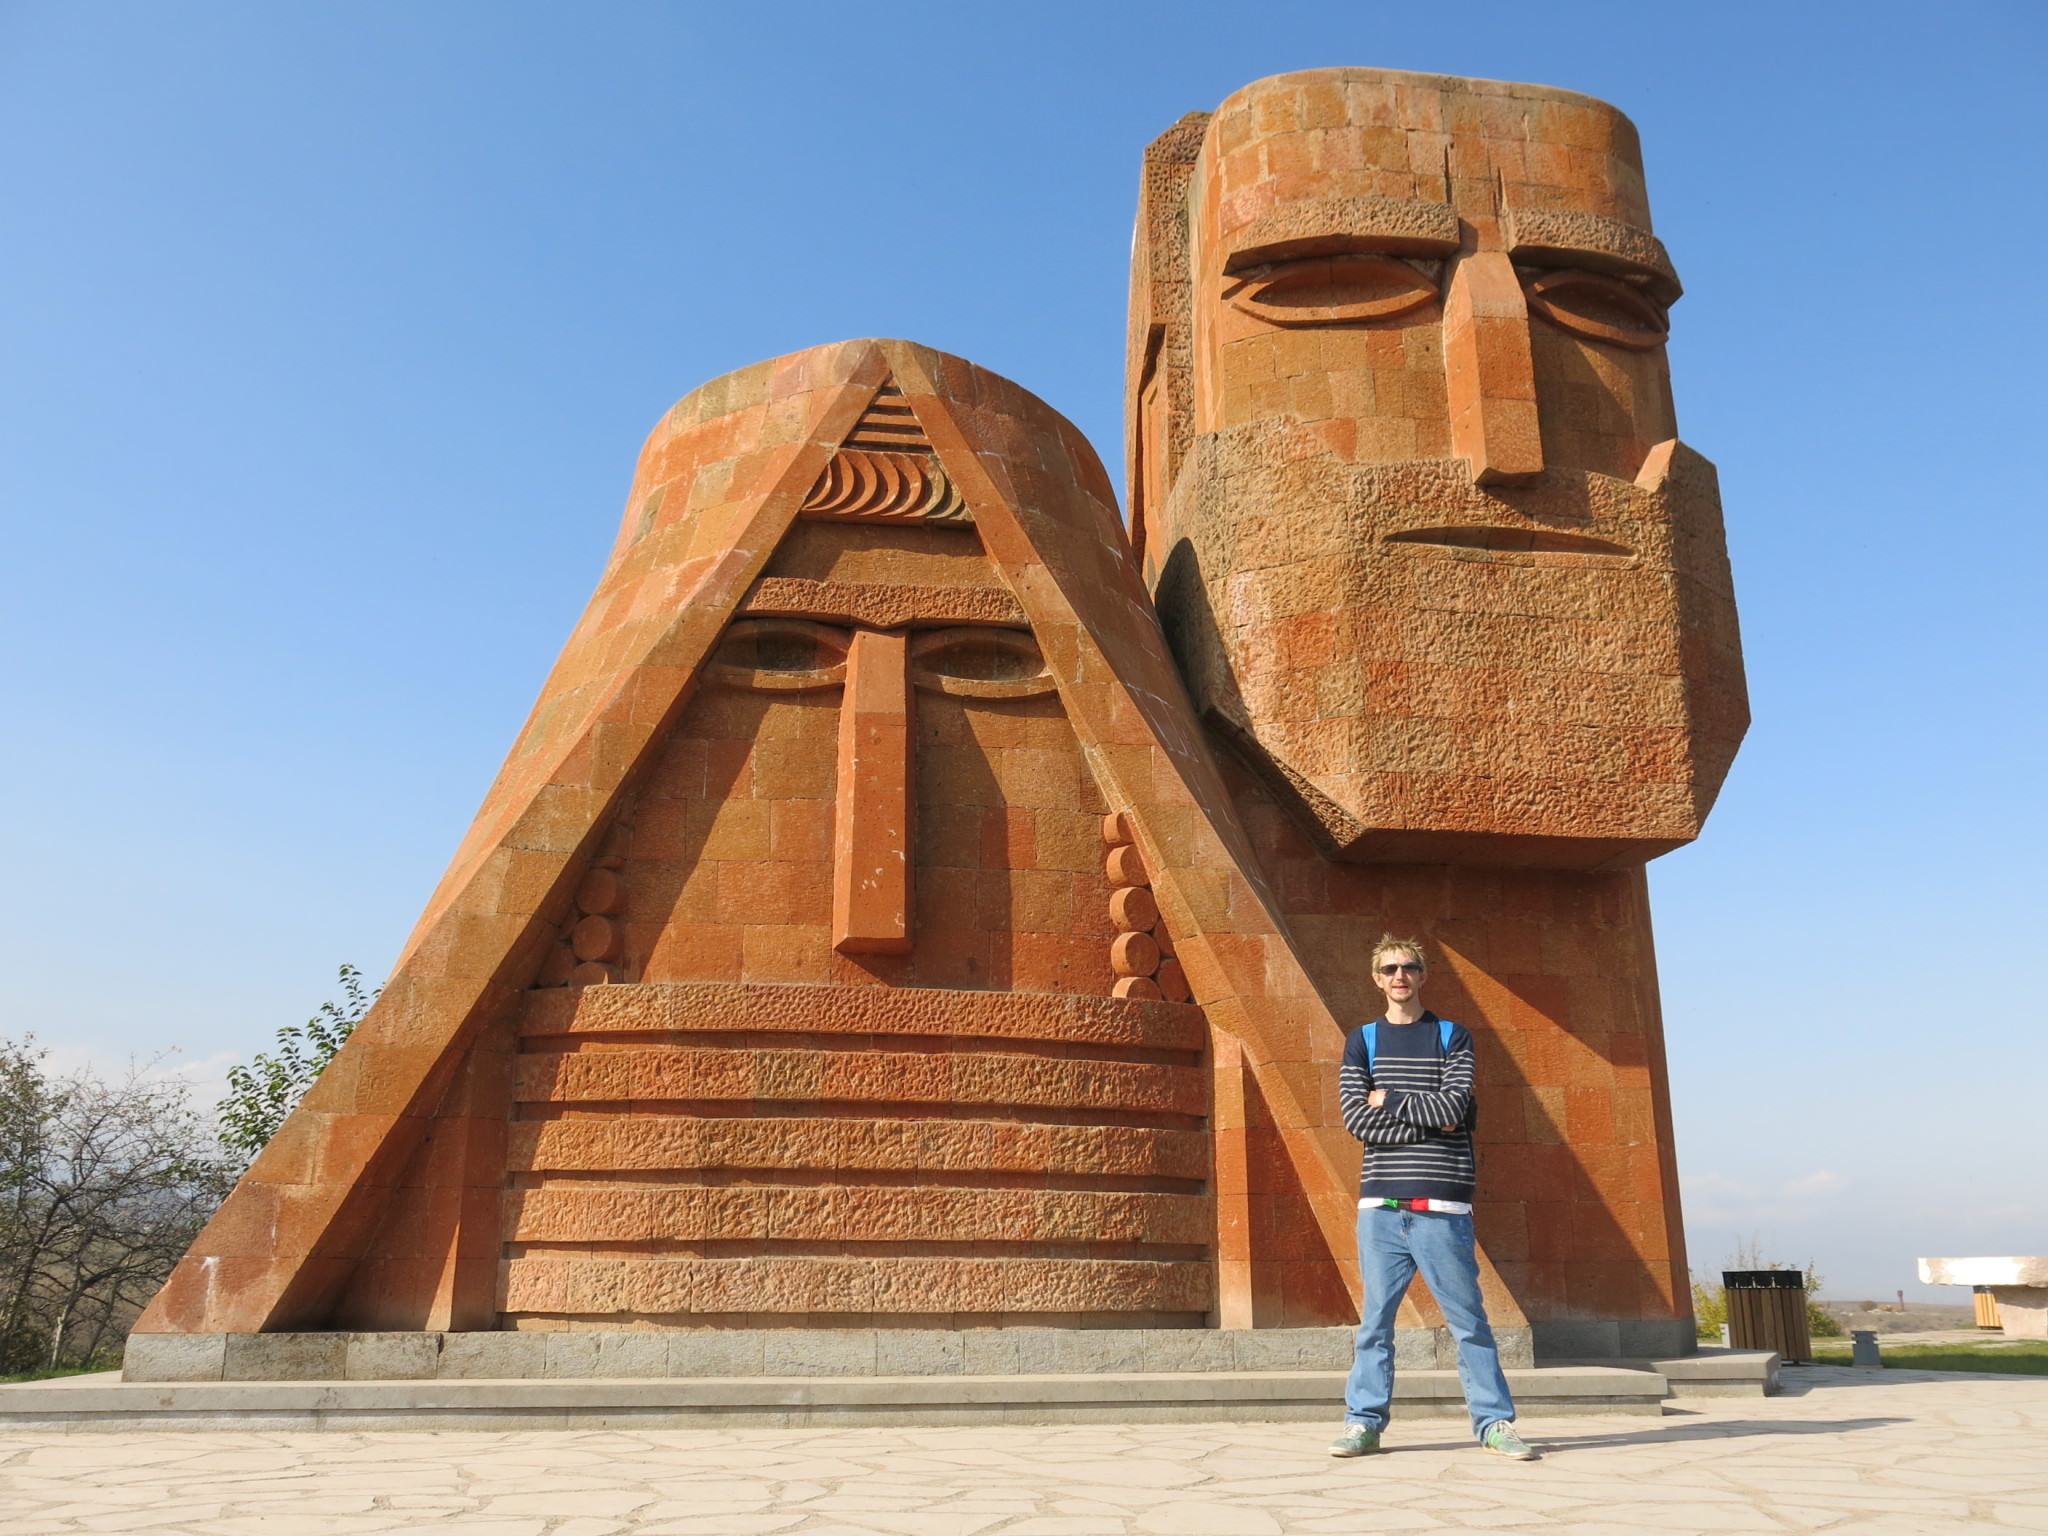 backpacking in stepanakert